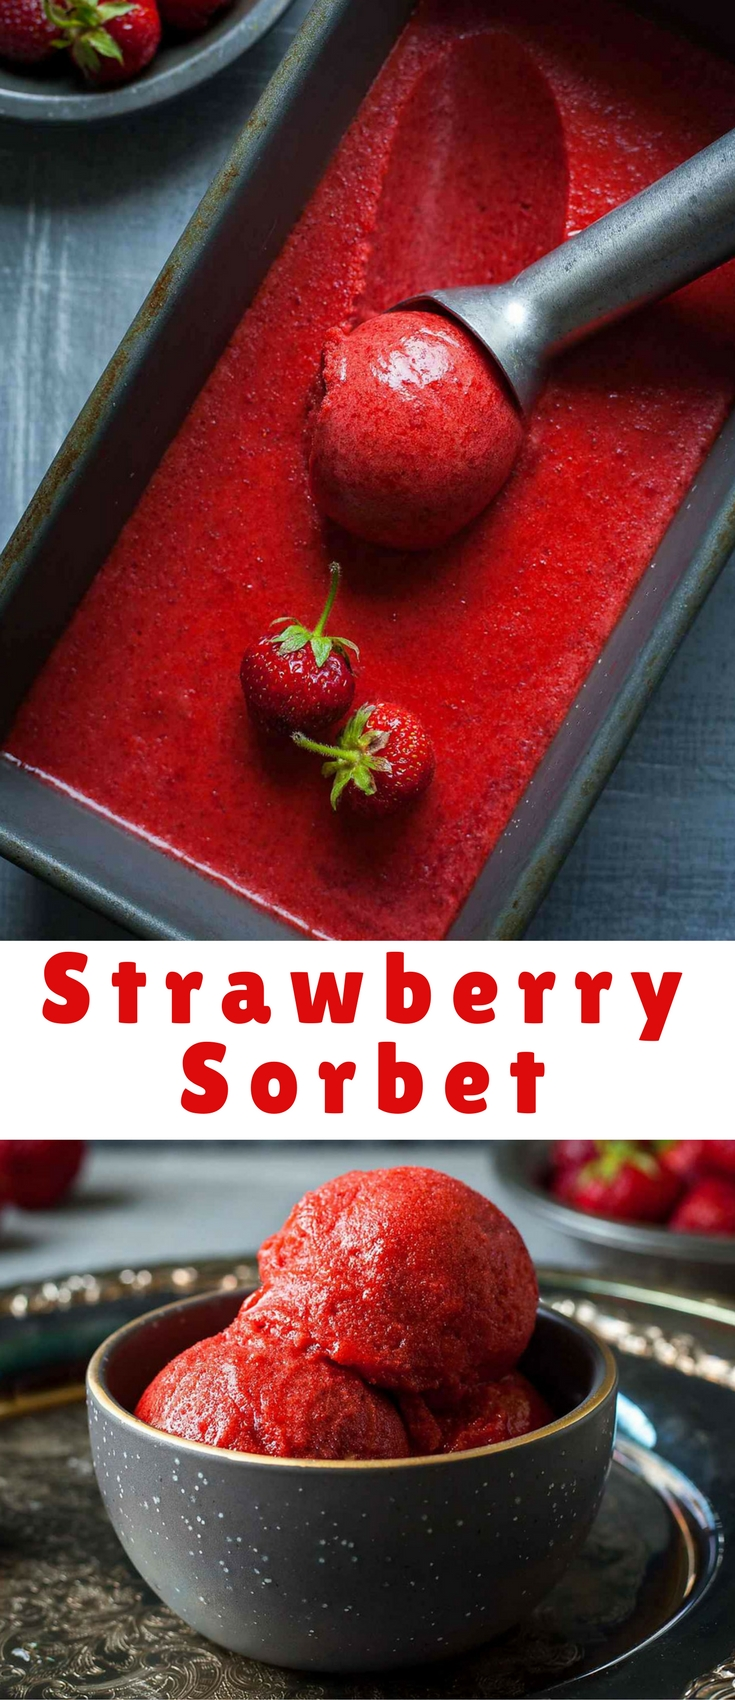 Ripe strawberries sweetened with raw honey for an easy, fresh, frozen treat.